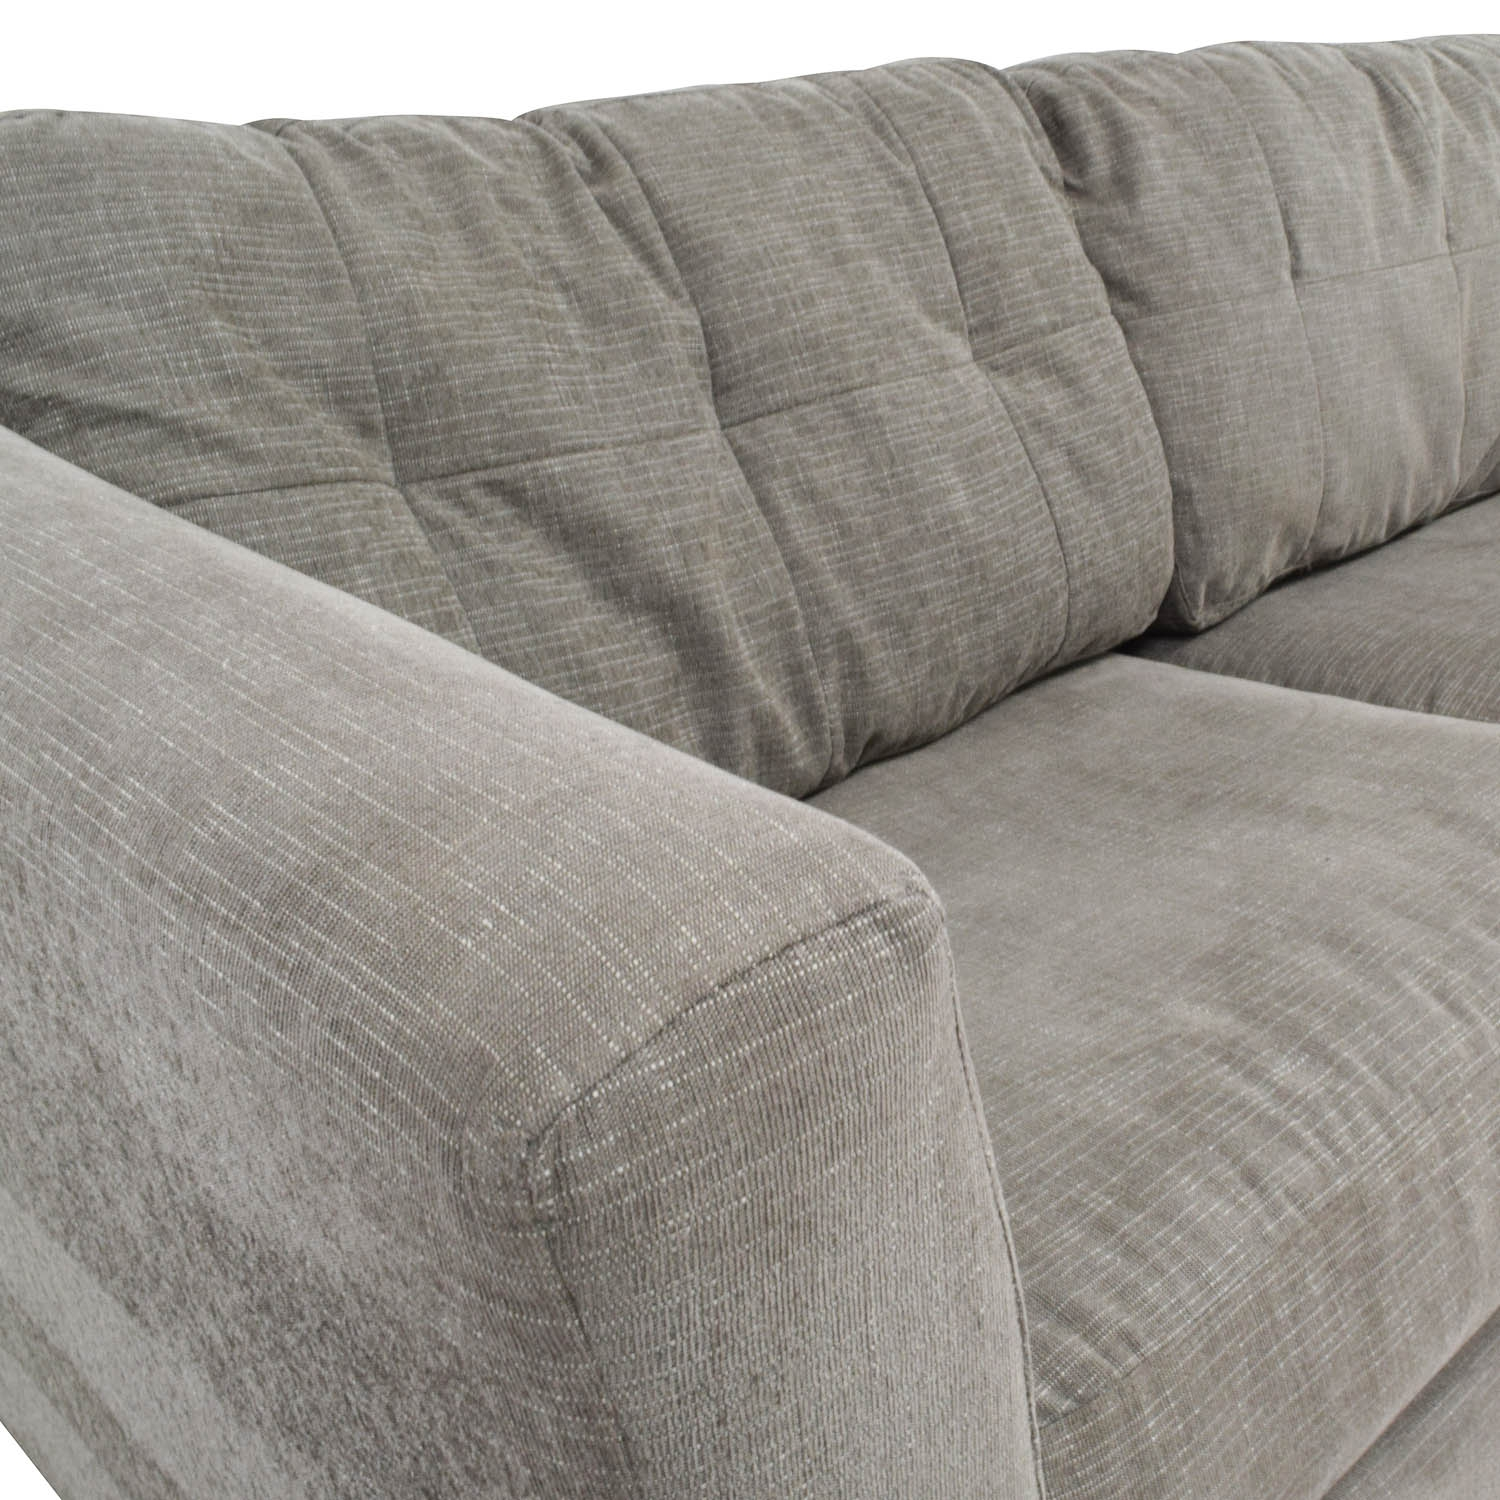 62 Off Bauhaus Bauhaus Grey Queen Sleeper Sofa Sofas Regarding Bauhaus Sleeper Sofa (View 11 of 15)